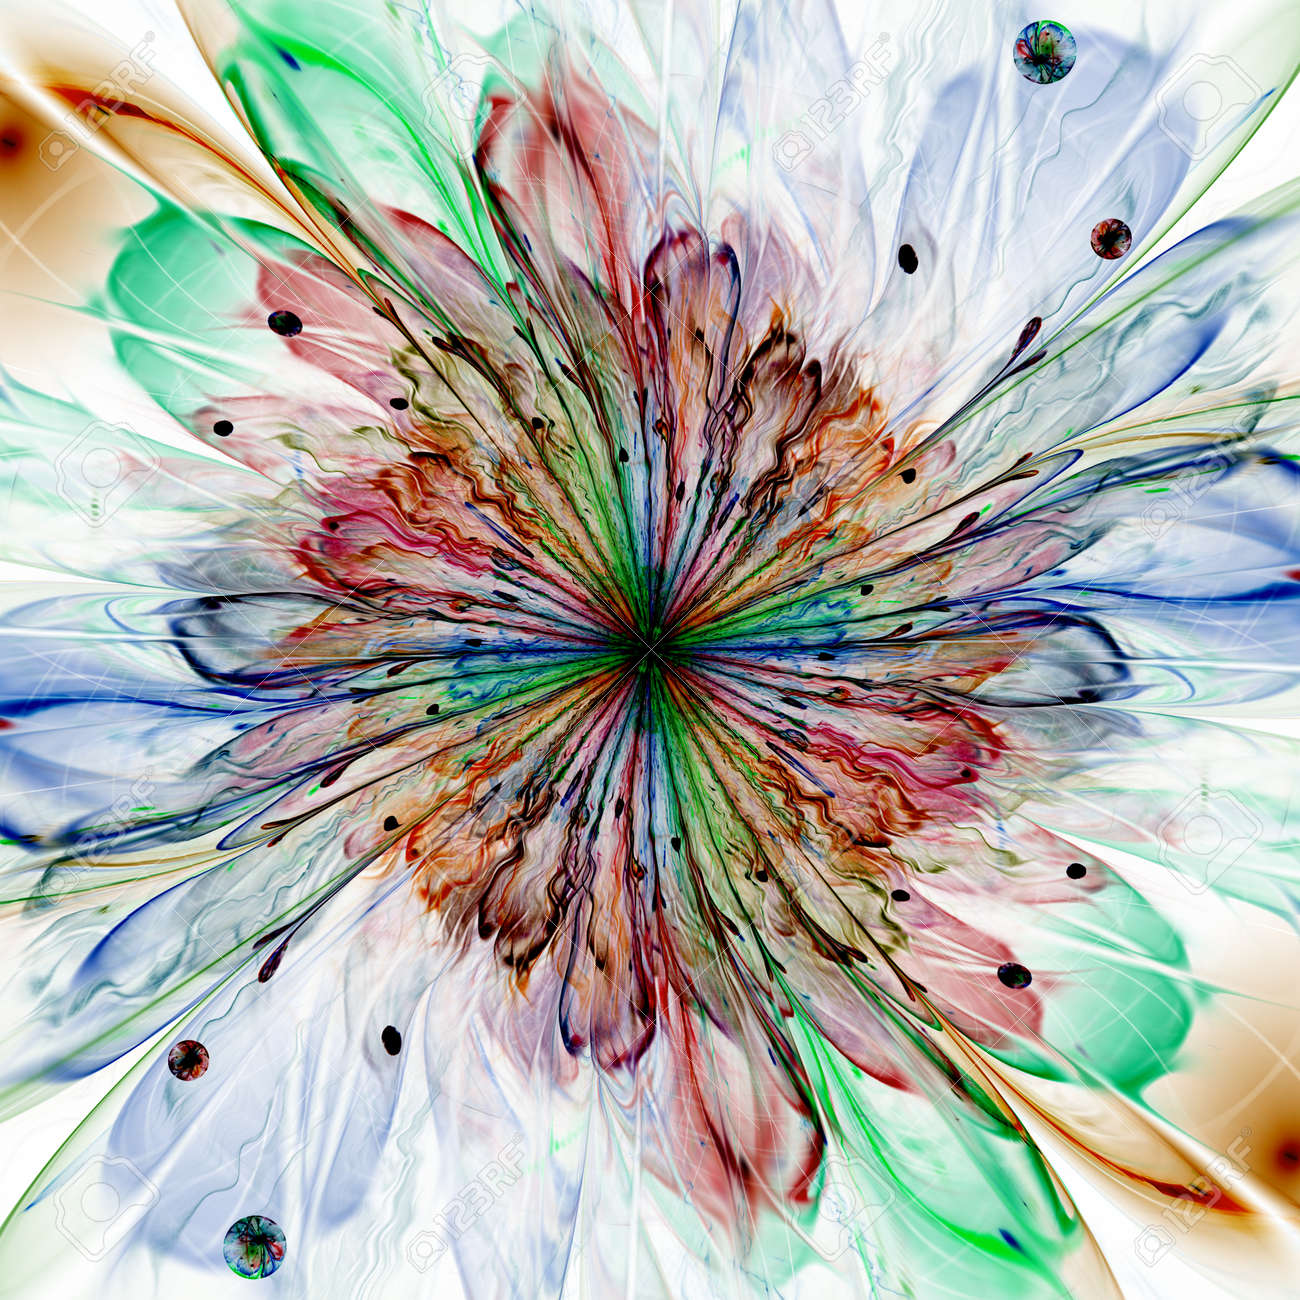 Abstract High Resolution Wallpaper With A Detailed Modern Exotic Looking Shining Flower In The Center And